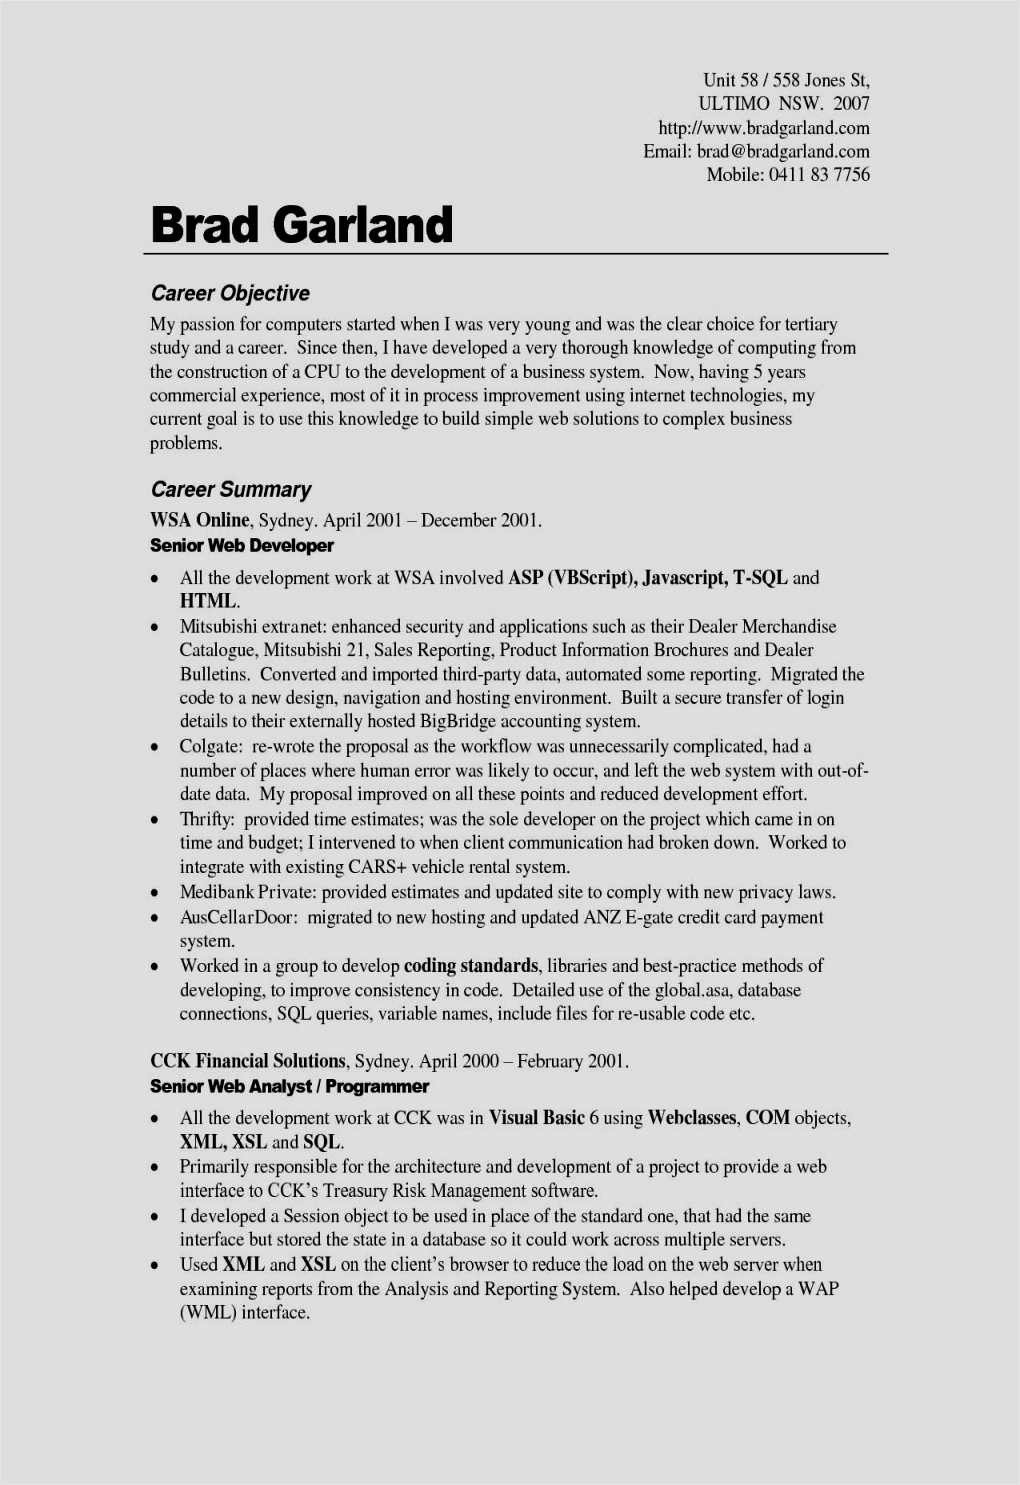 Resume Introduction Letter - Cover Letter How to Start Free Resume Templates